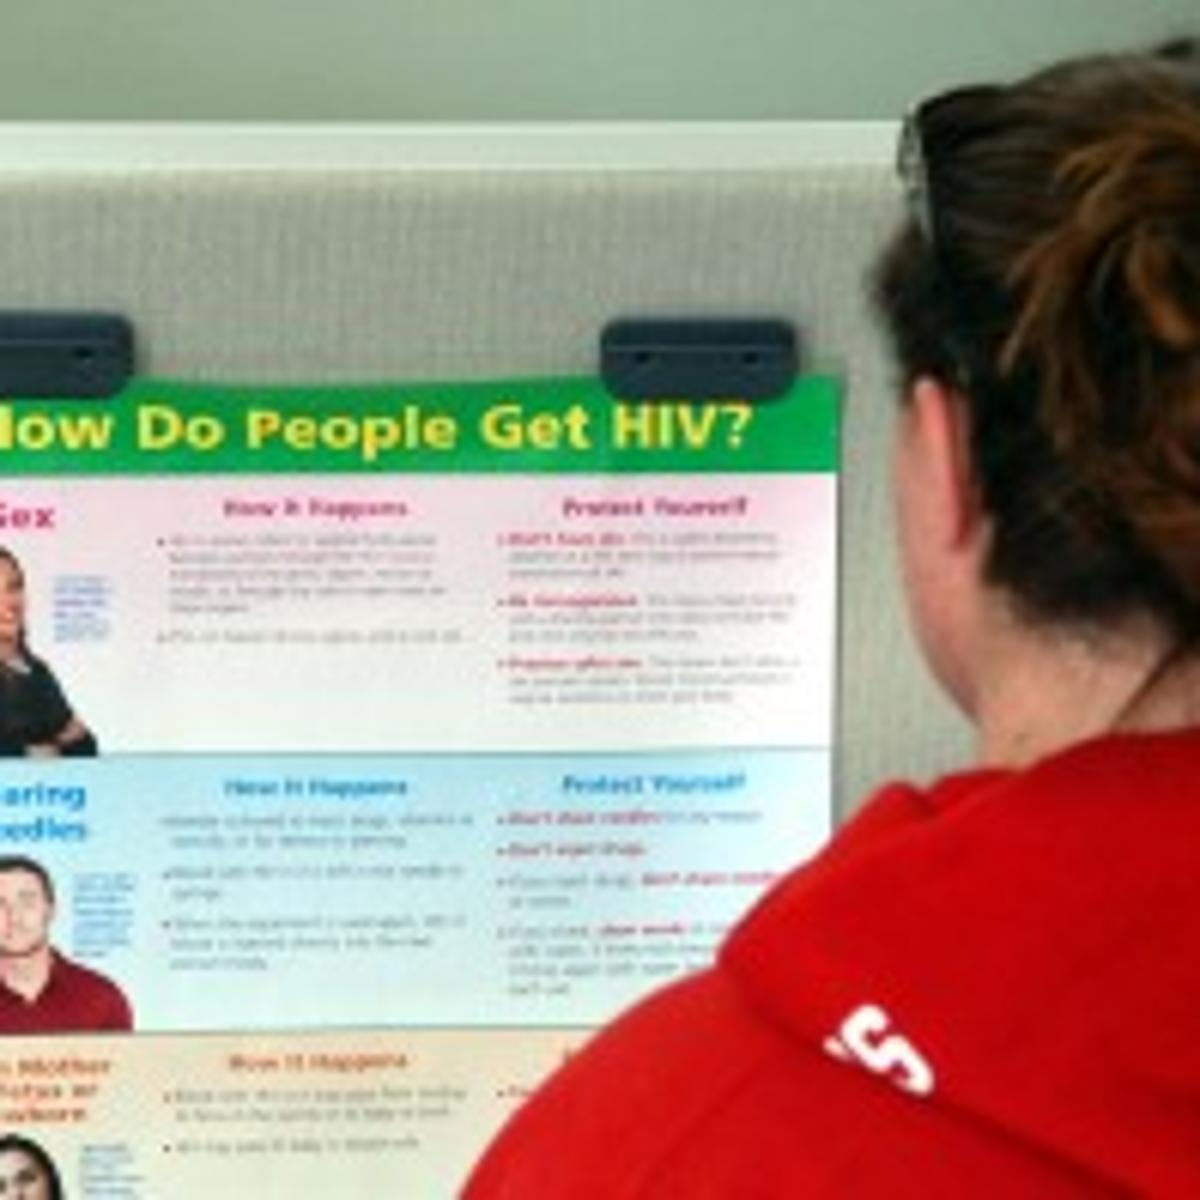 Atlantic County among nation's top 20 for rate of HIV, AIDS | News